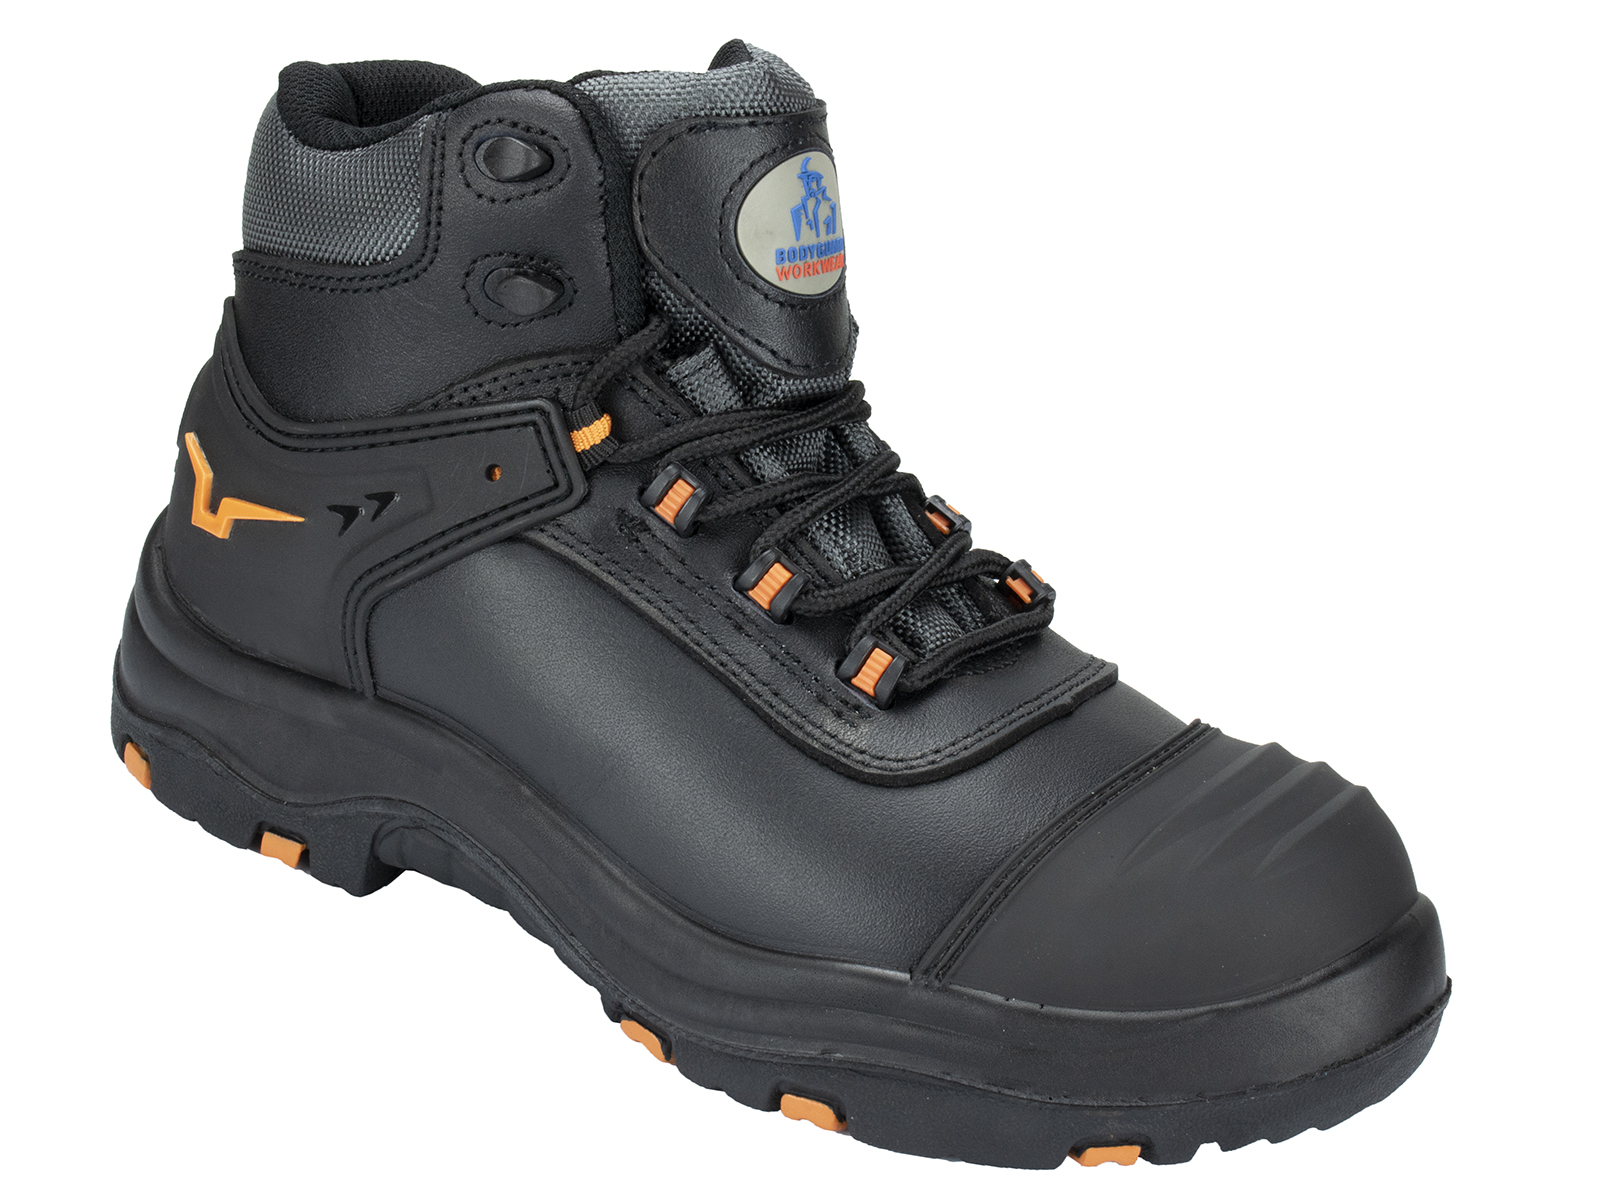 Dynamic leather safety boot w/ Padded Ankle Support and Tongue for Extra Comfort - side